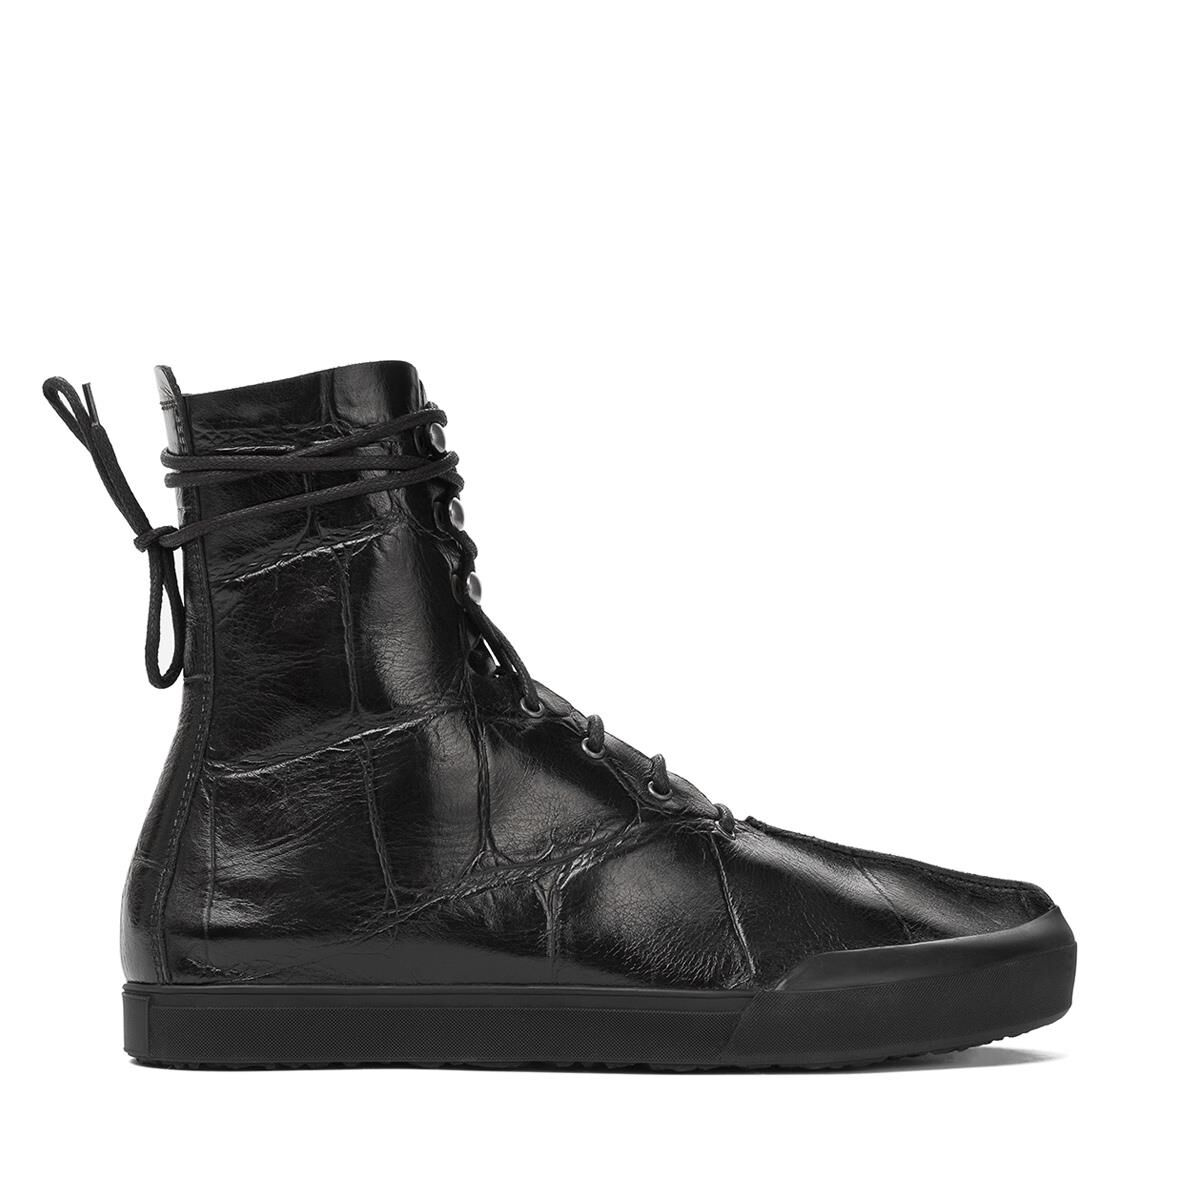 Loewe Leather Lace Ups Recommend Sale Online Sale With Mastercard Sale Wiki Outlet Finishline P6fe2c8ex